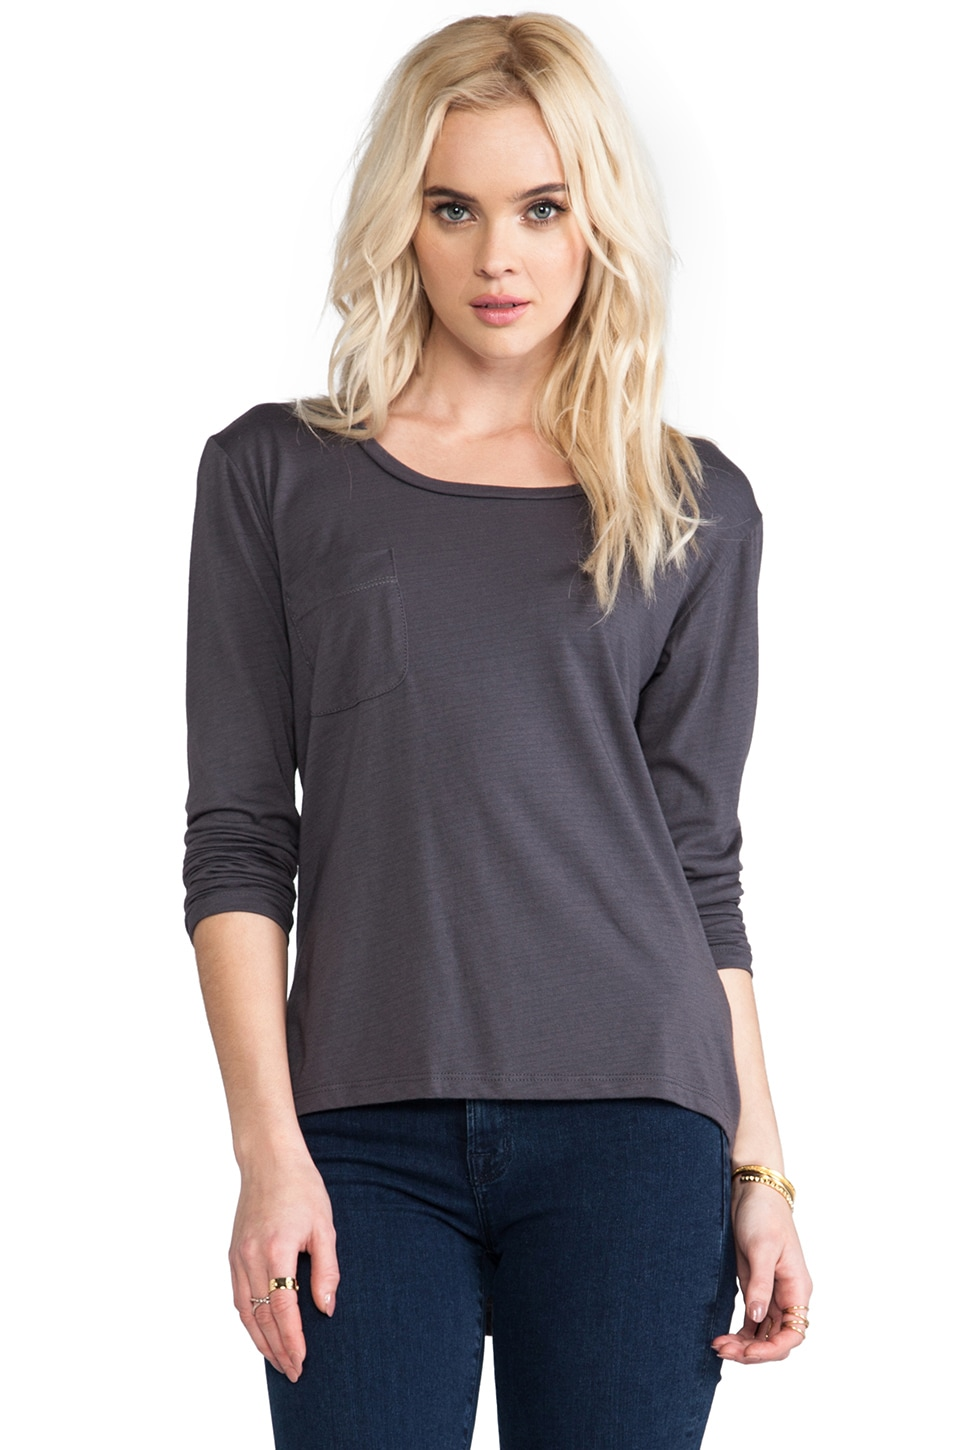 A Fine Line Farrah Long Sleeve Top in Charcoal